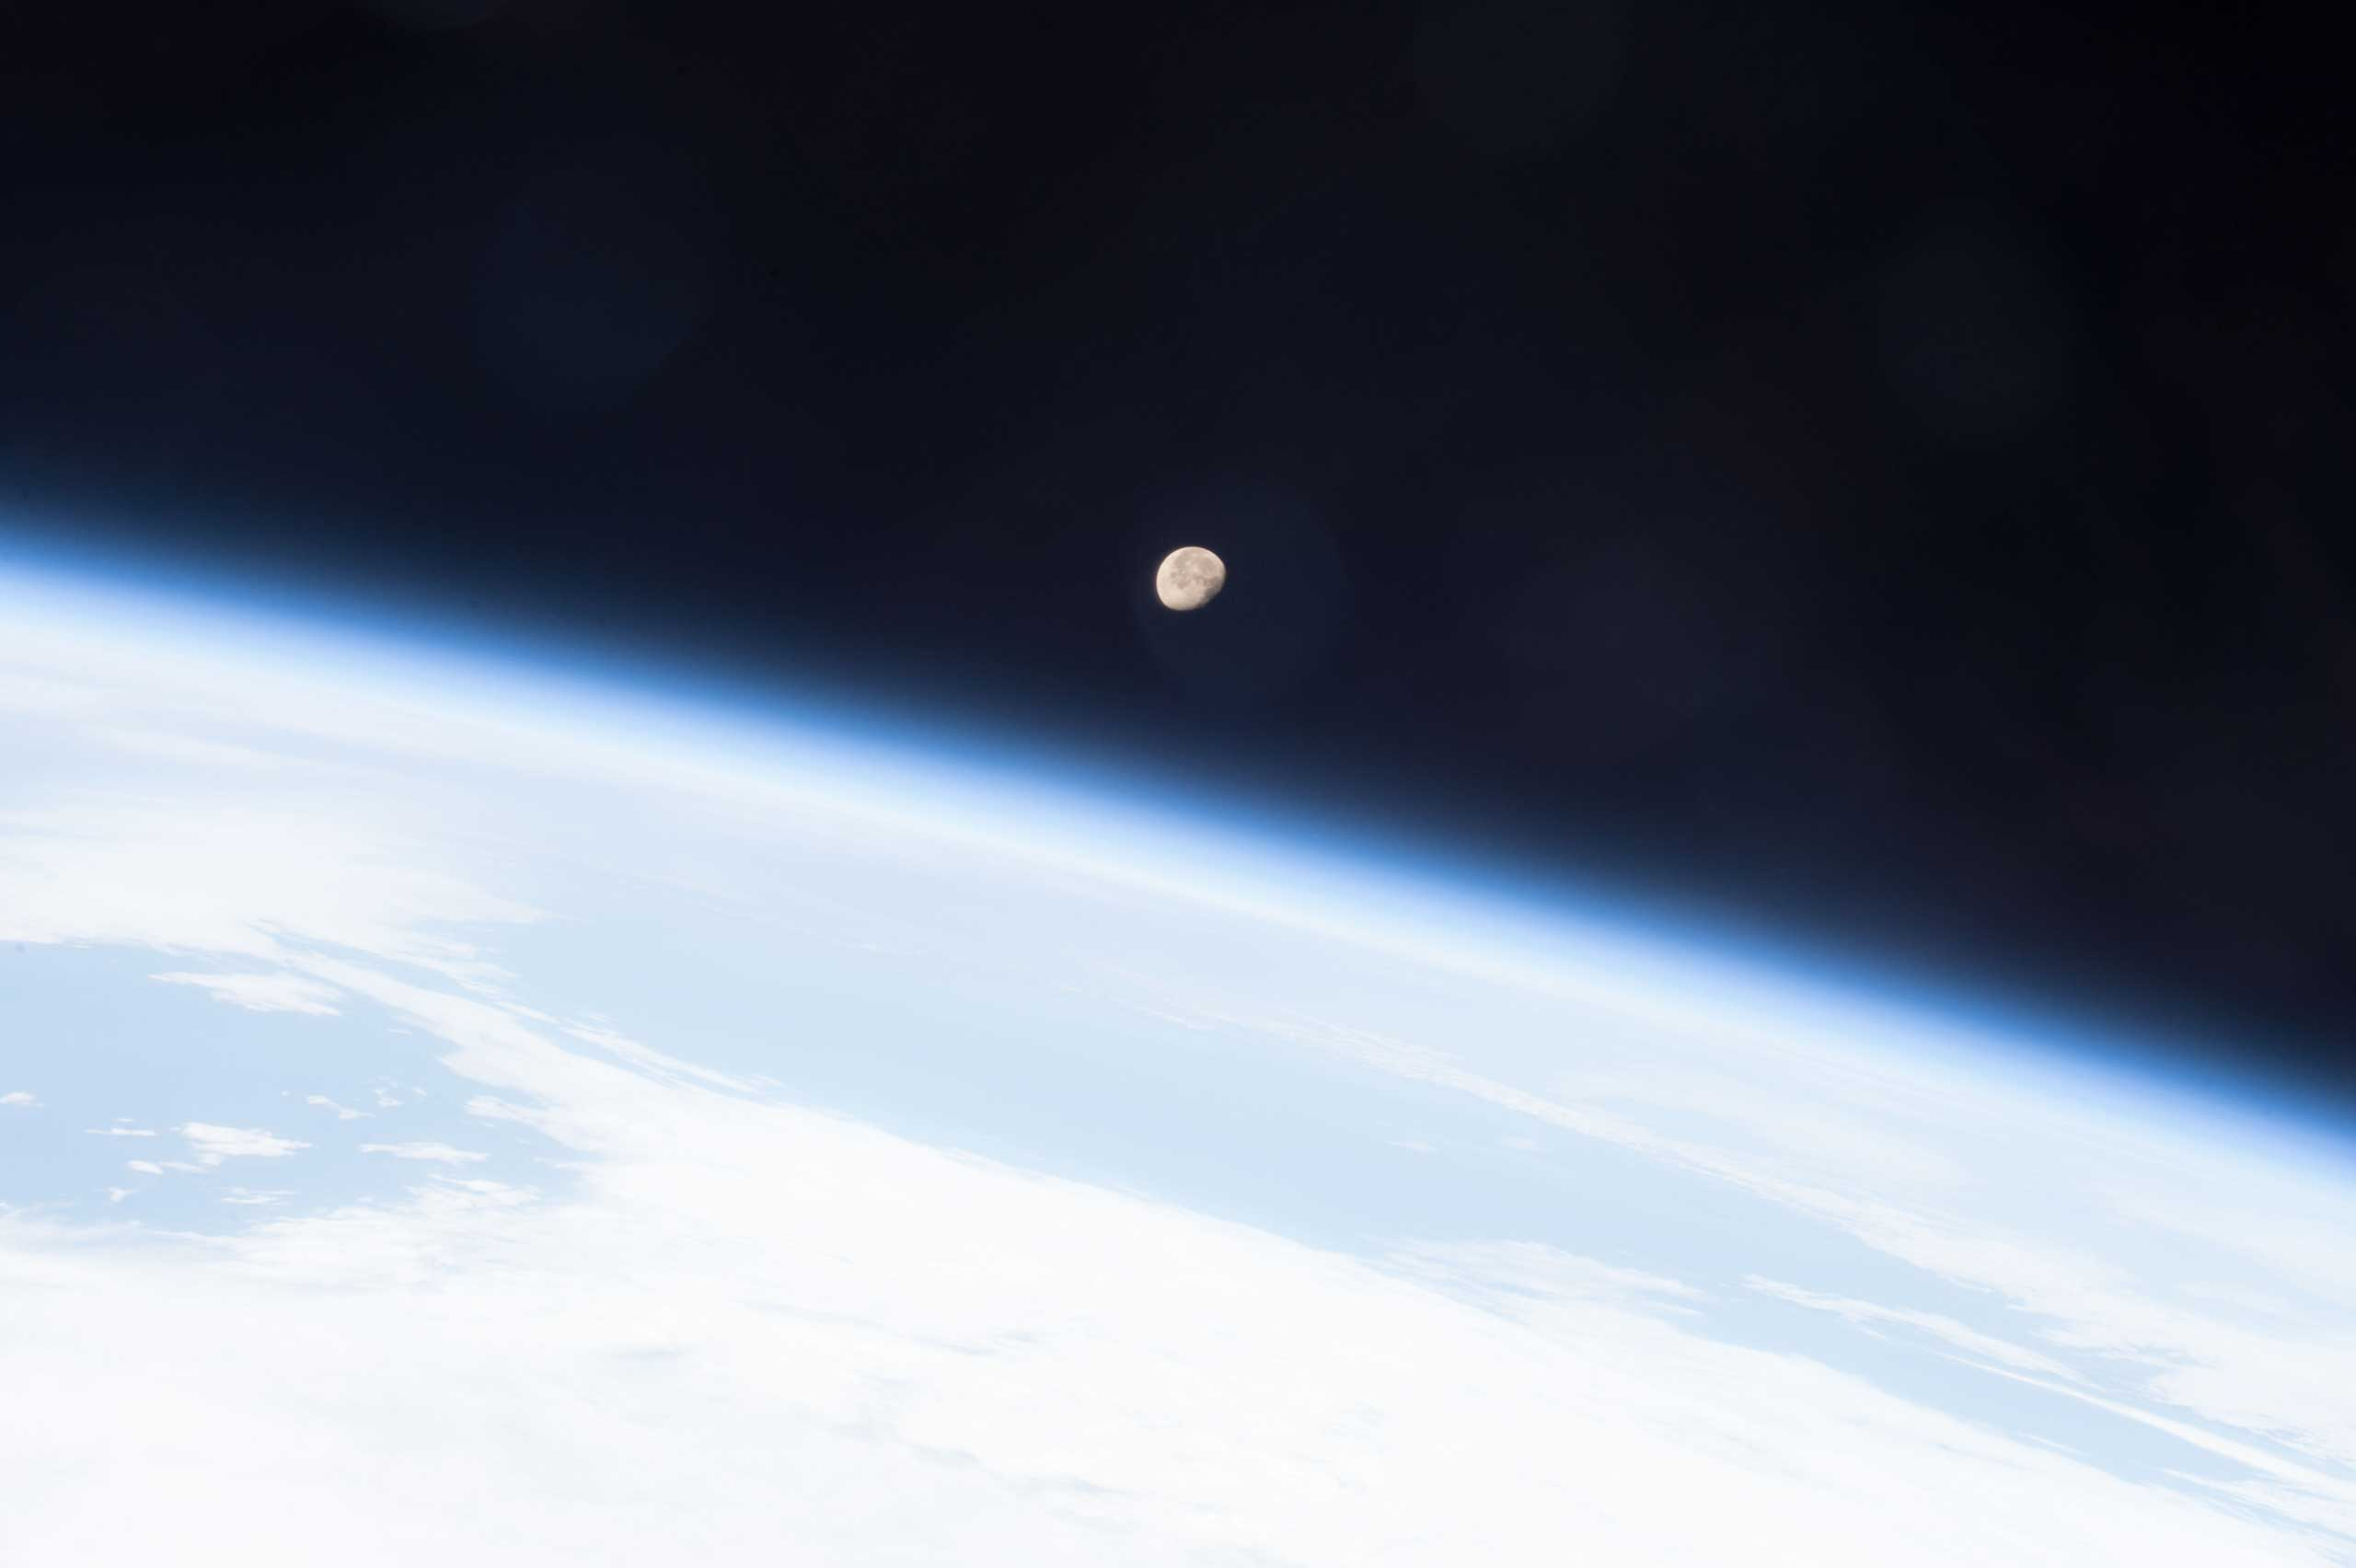 The Moon shines brightly on planet Earth's horizon in this image snapped from the International Space Station May 7, 2015 by the crew of Expedition 43 led by Commander Terry Virts, NASA astronaut.